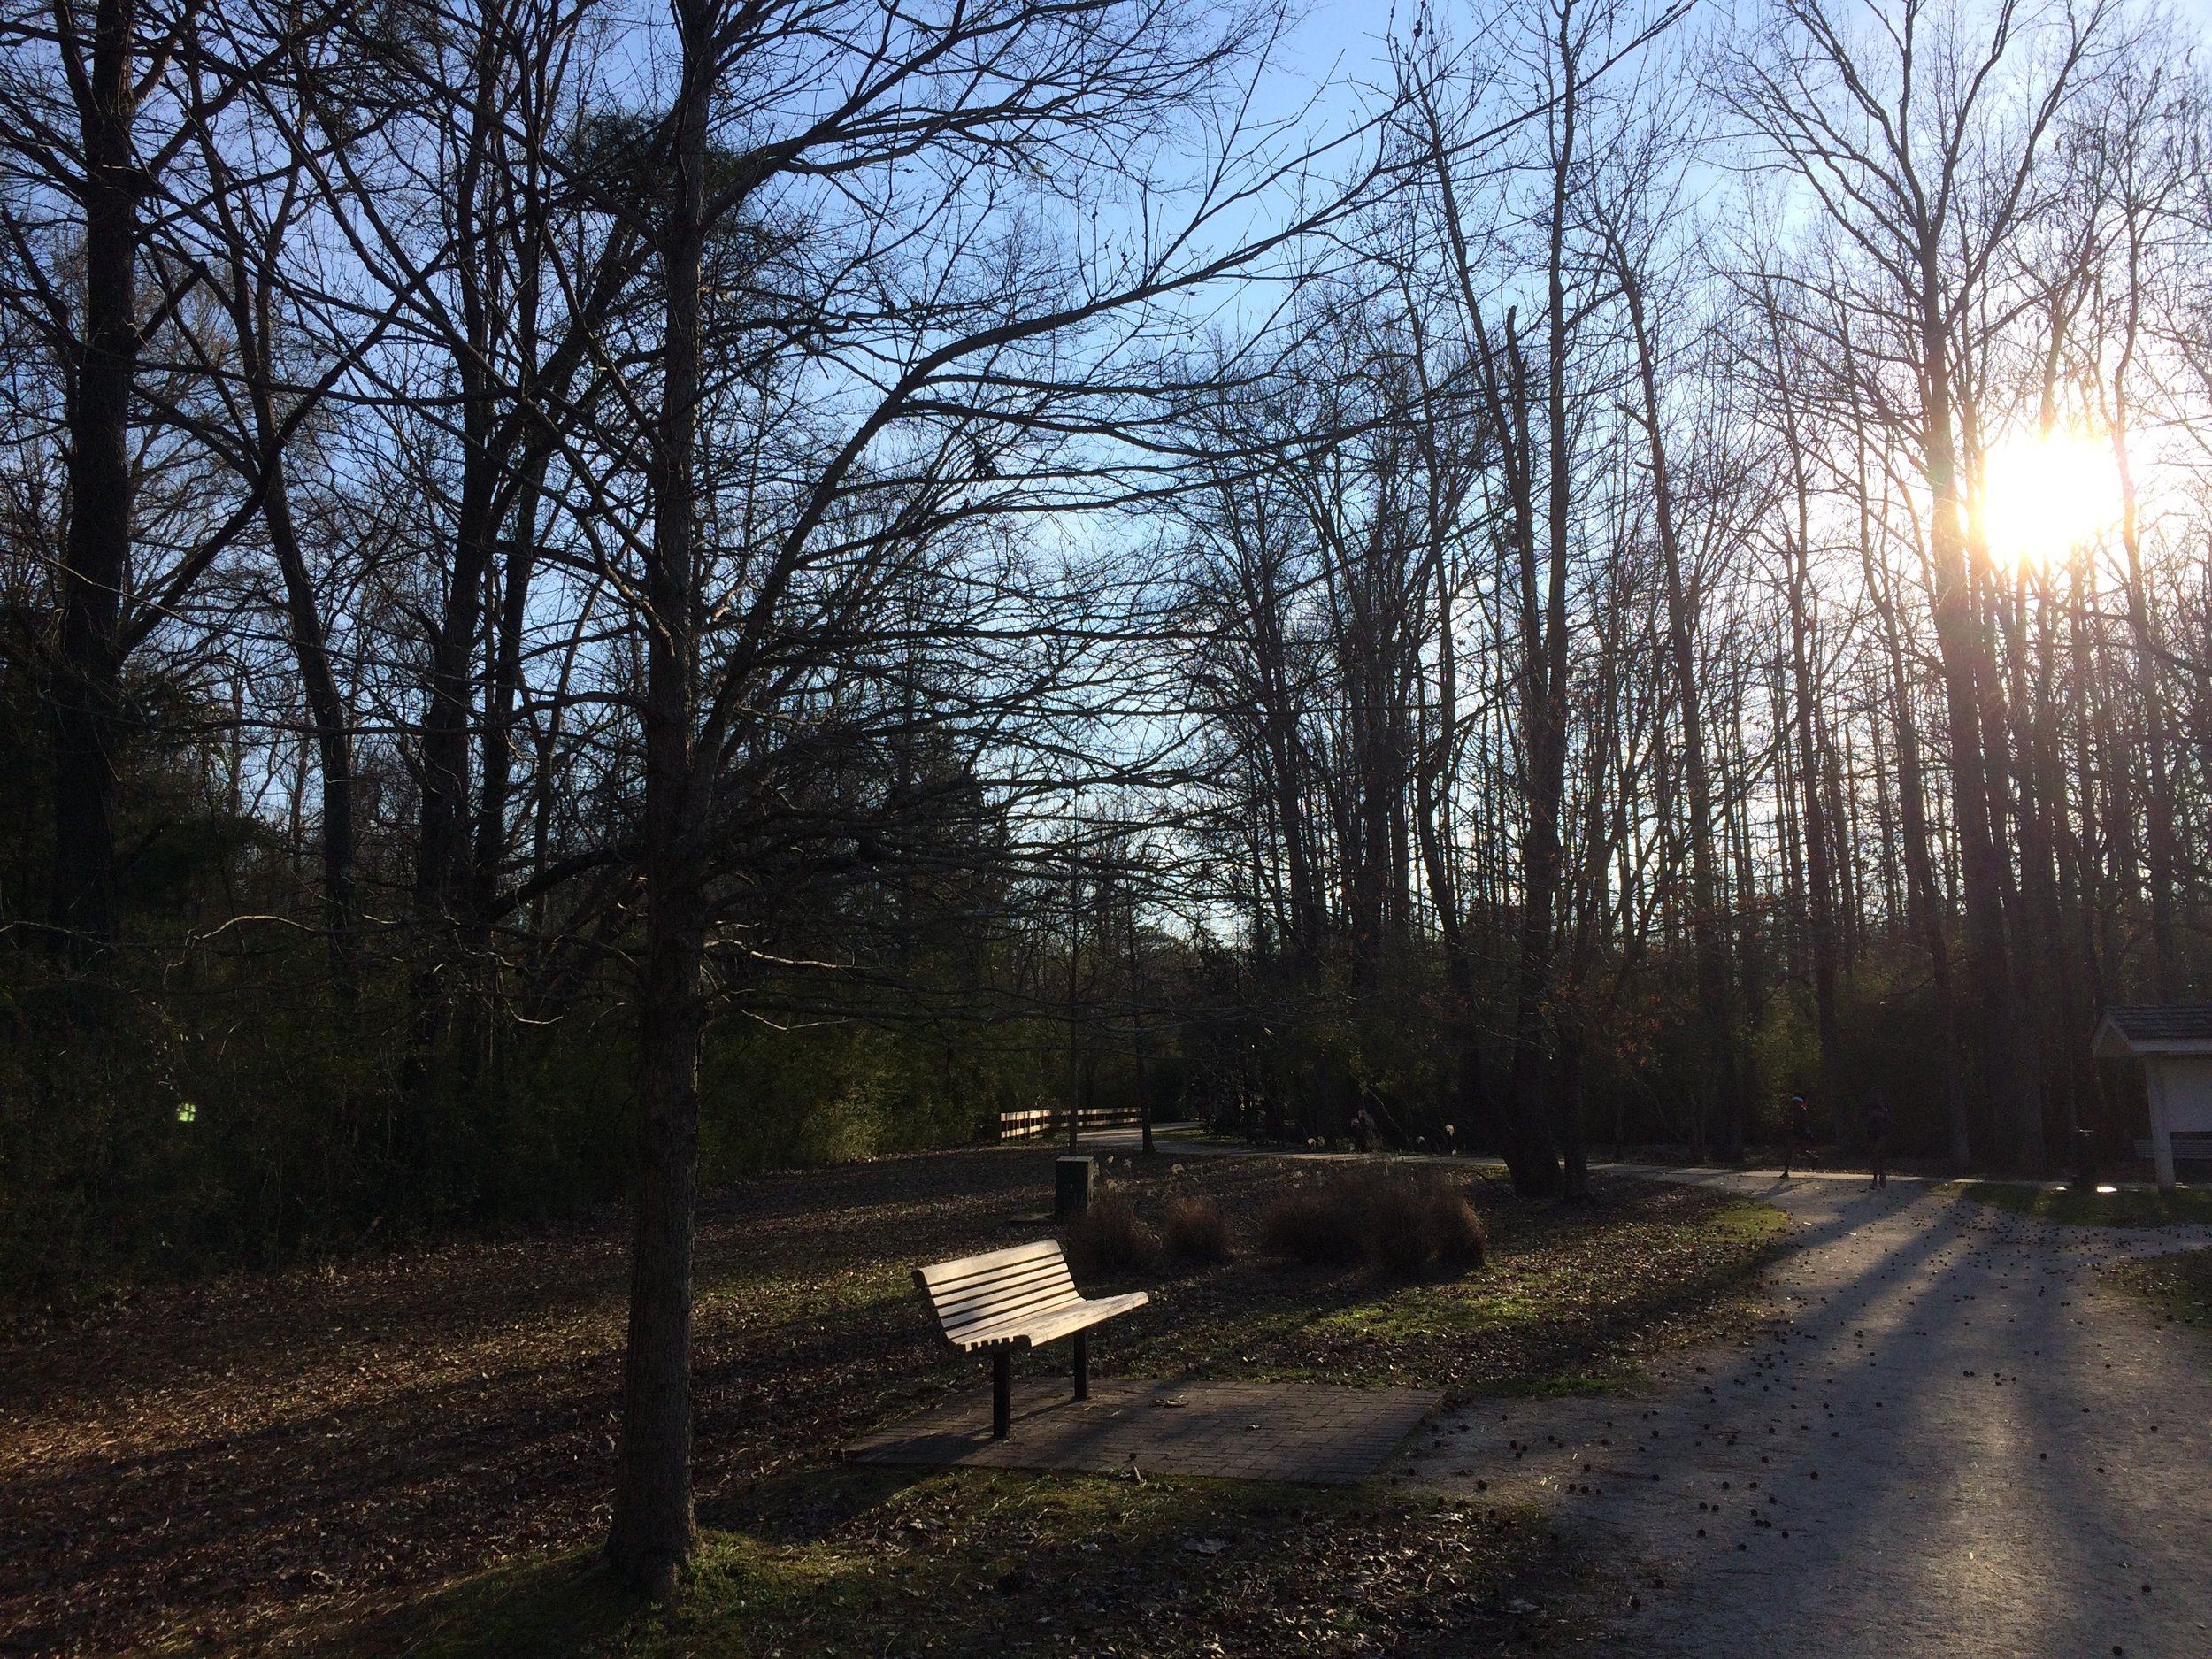 Late afternoon walk at Town Creek Park in Auburn